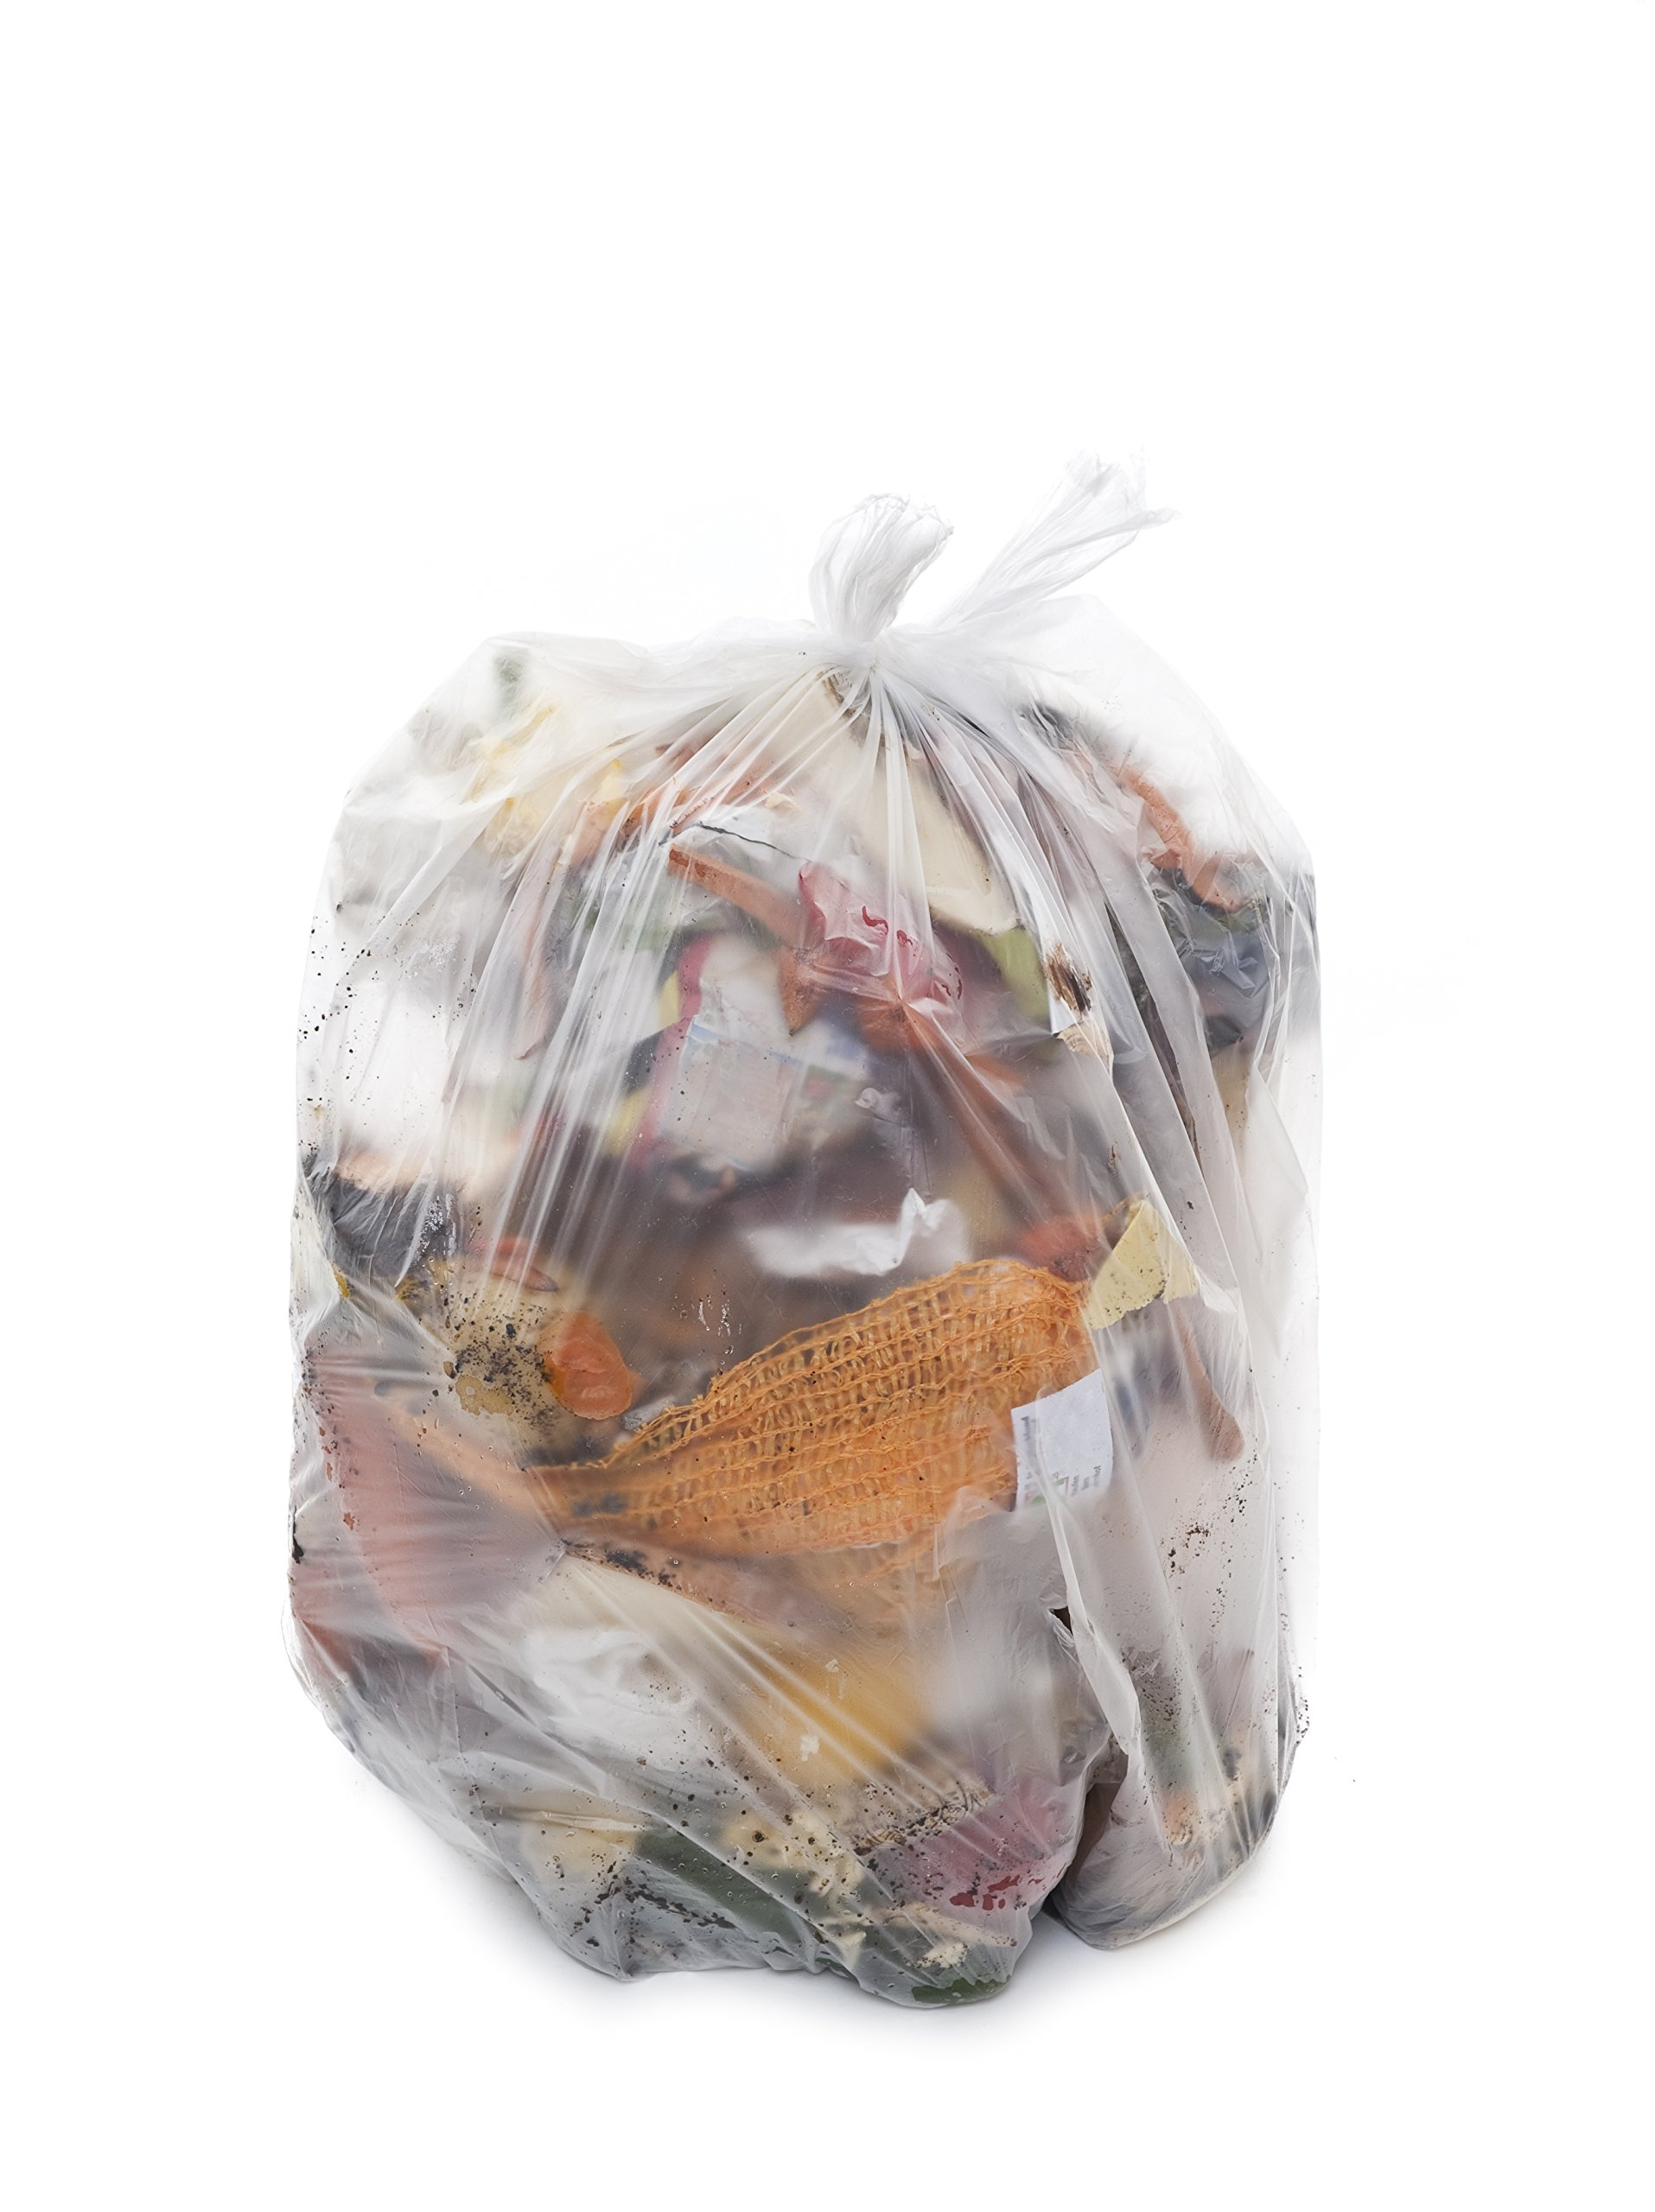 TLD-4048HC, 40-46 Gallon, 100 count, FDA Food Grade Can Liners, 1.6 Mil, Low Density, Clear, MADE IN USA